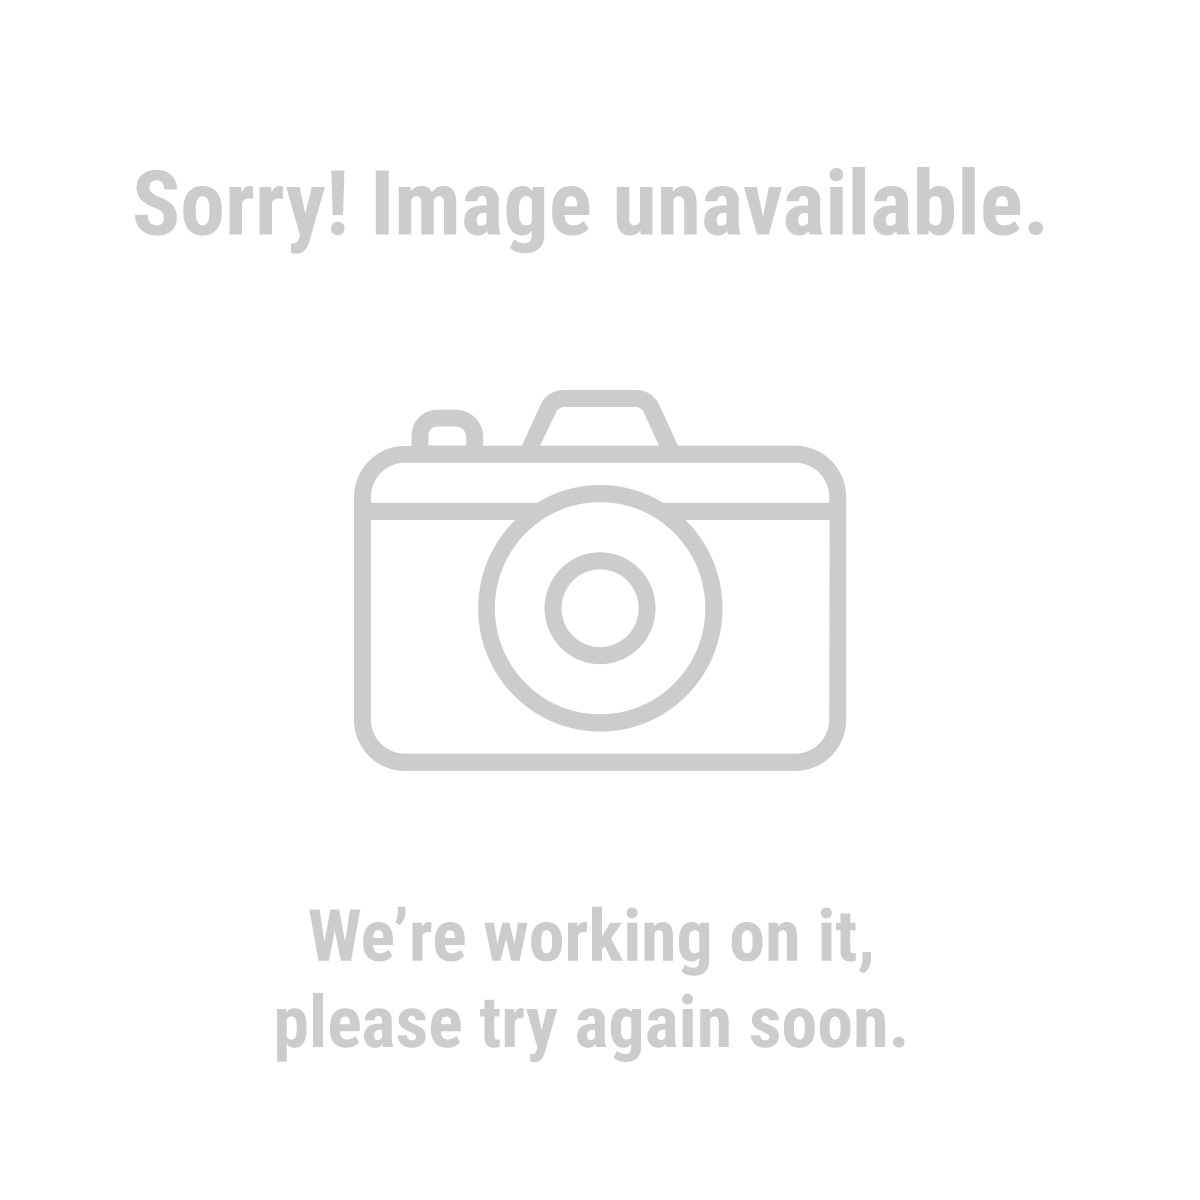 HFT 60269 100 Ft. x 14 Gauge Outdoor Extension Cord